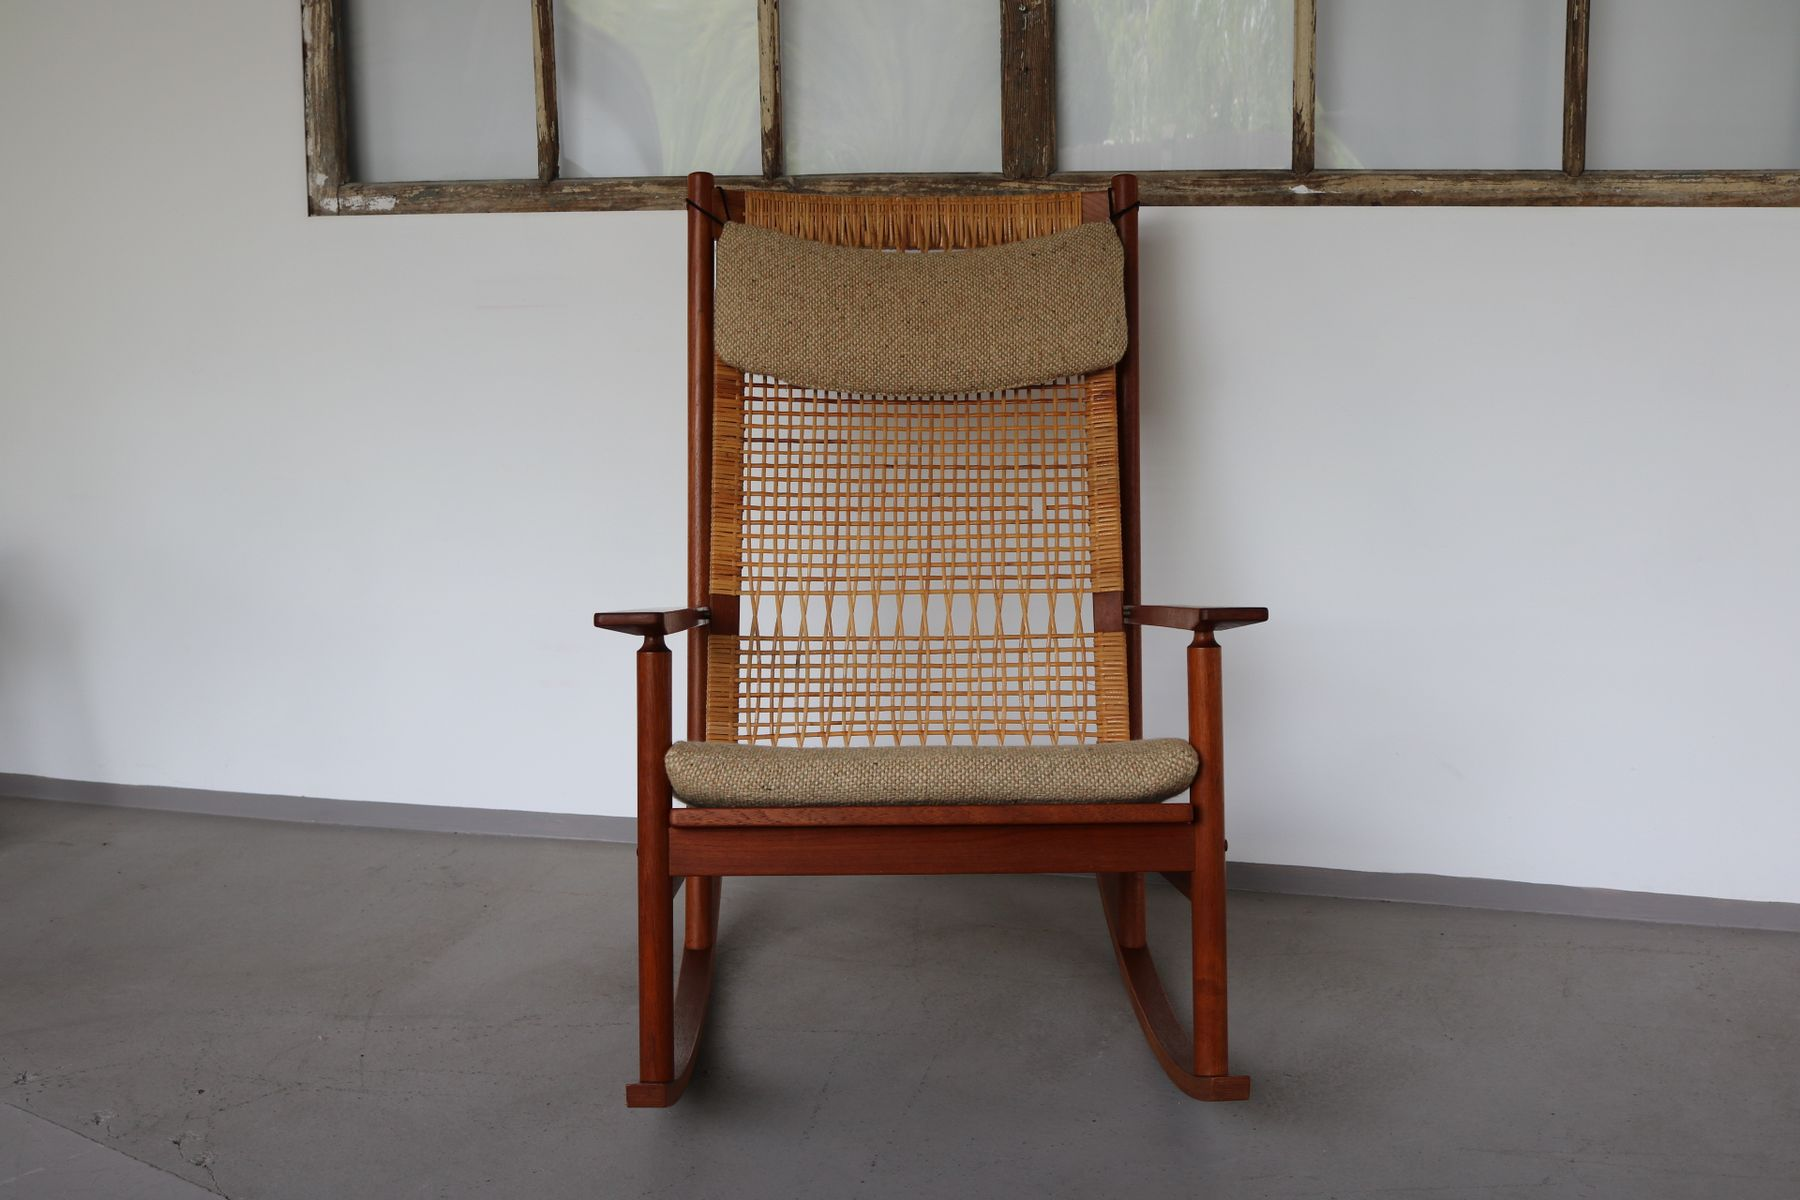 Danish Teak Rocking Chair by Hans Olsen for Brdr Juul Kristensen